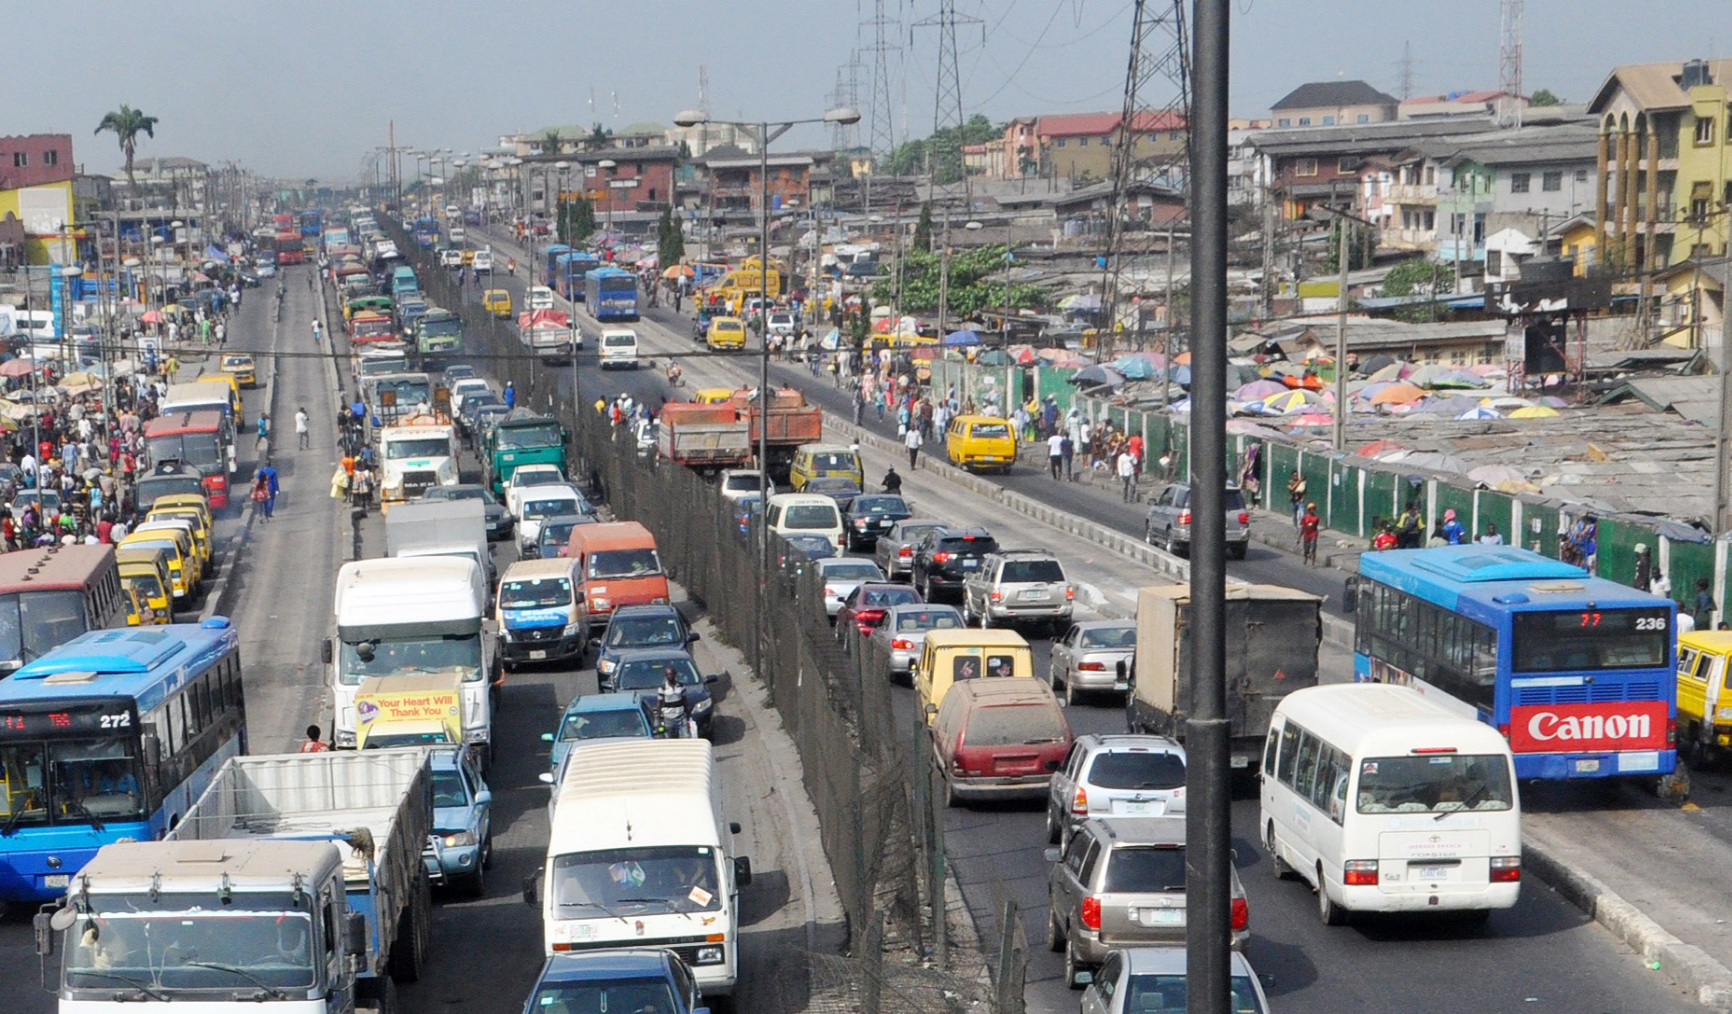 FW: Apapa Gridlock: an emergency?